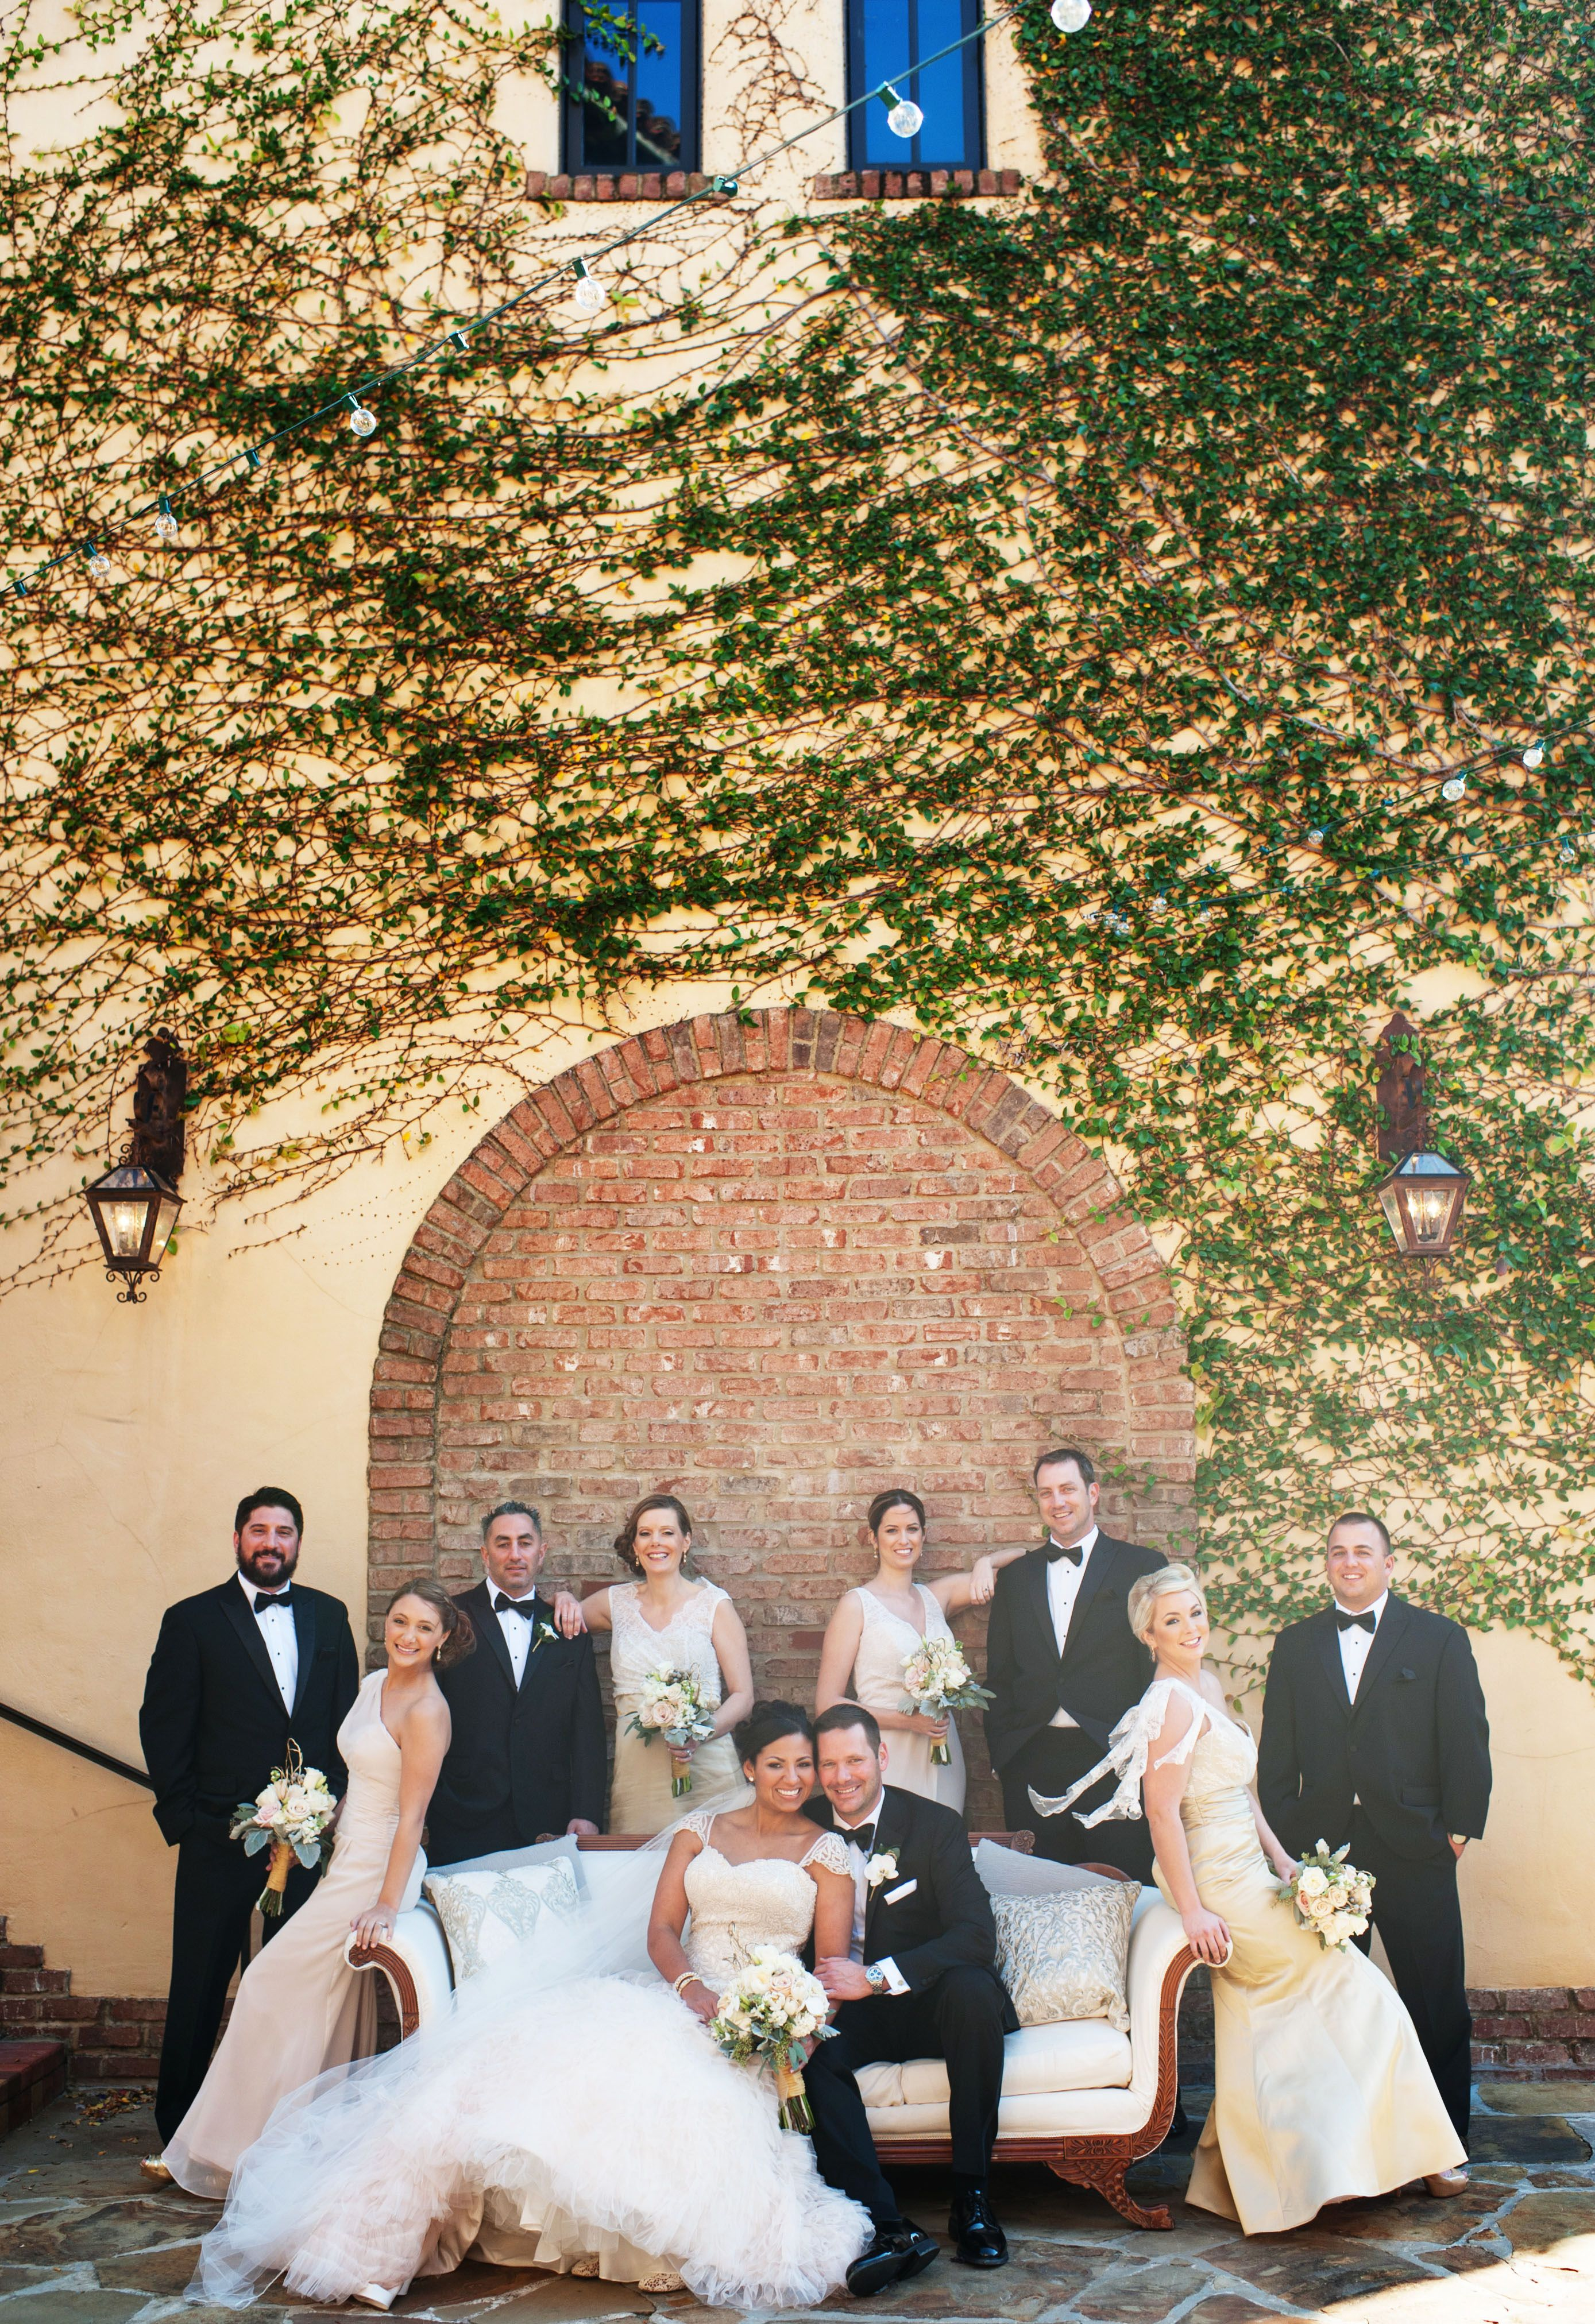 Perfect Tuscan backdrop for this lovely wedding party || Bella Collina Weddings